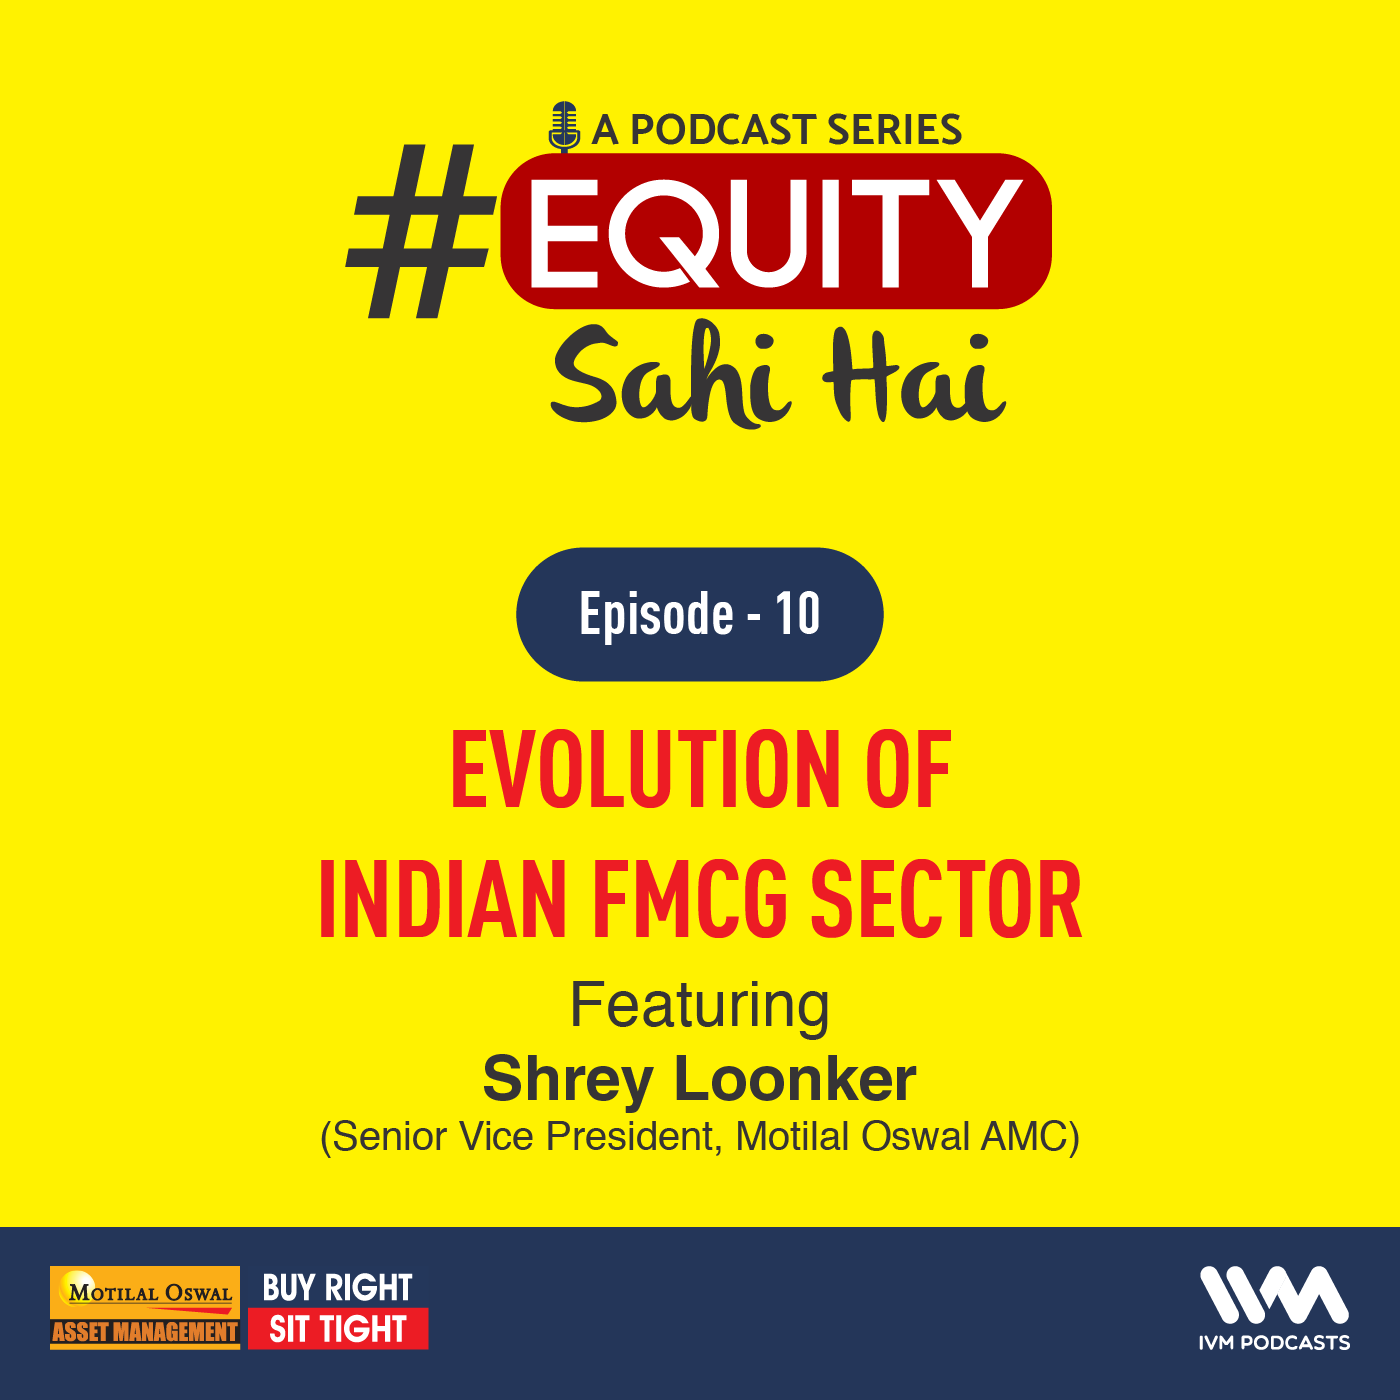 Ep. 10: Evolution of Indian FMCG Sector